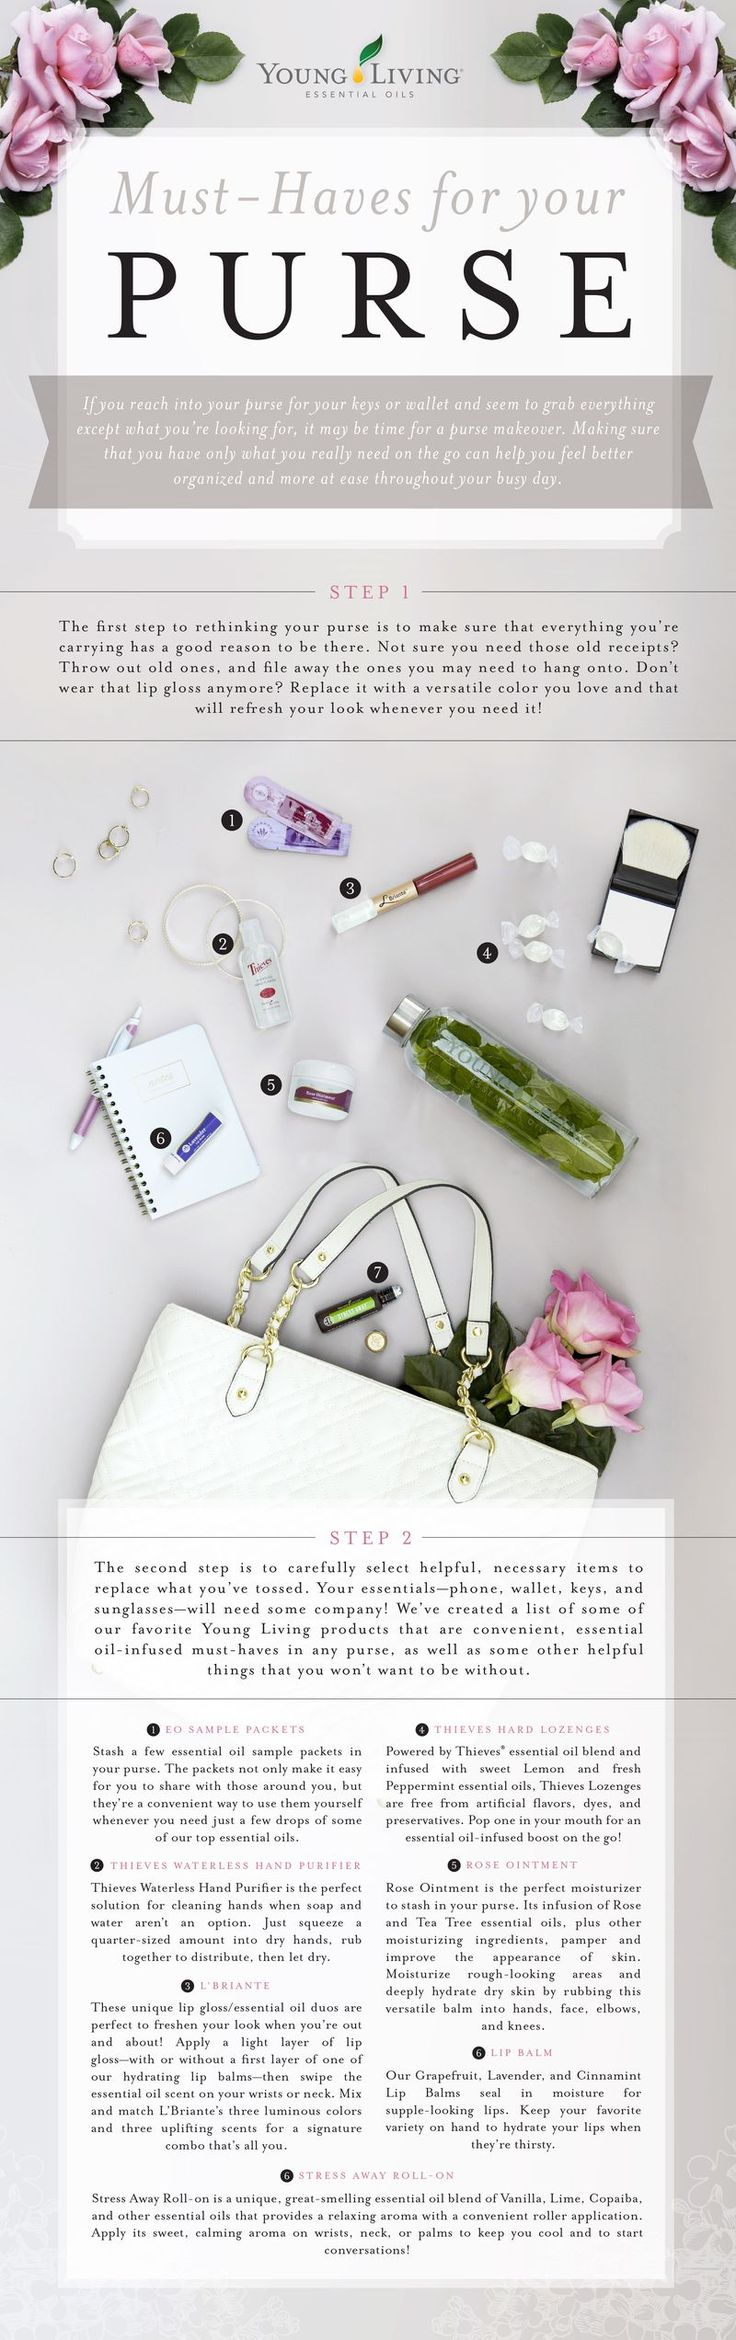 Must haves for your purse! www.EssentialOils4Sale.com #EssentialOils #LipGloss #LipBalm